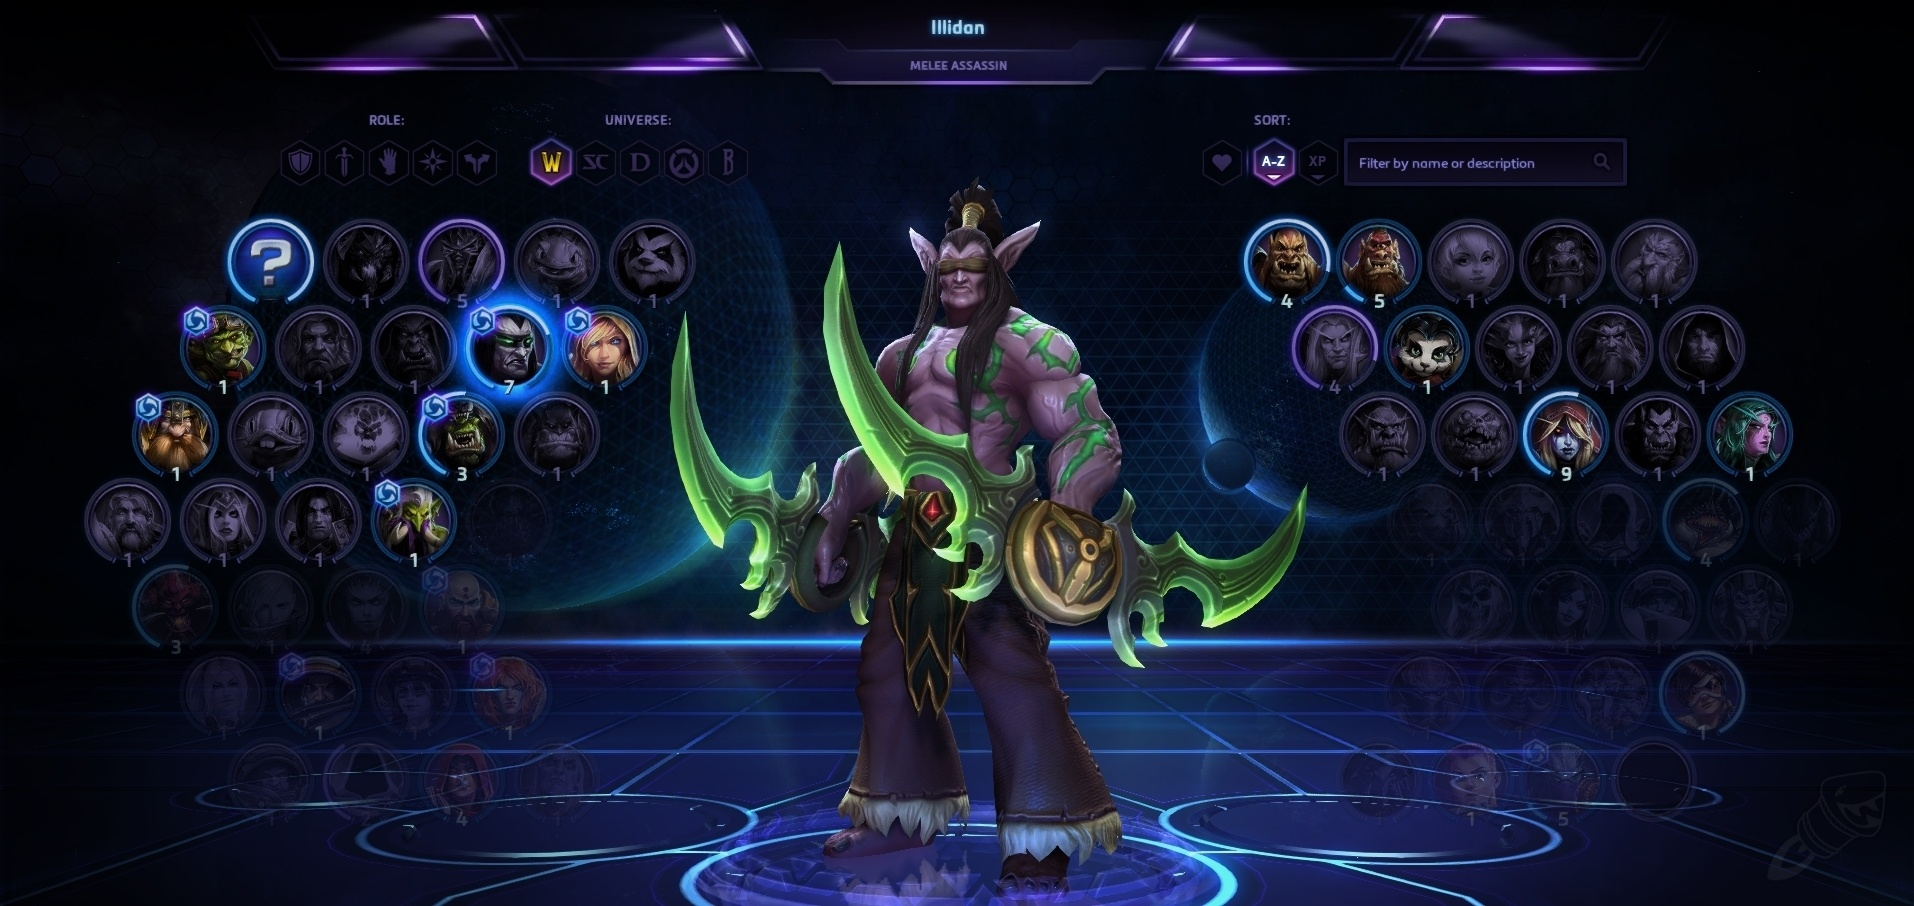 What Heroes Can I Play